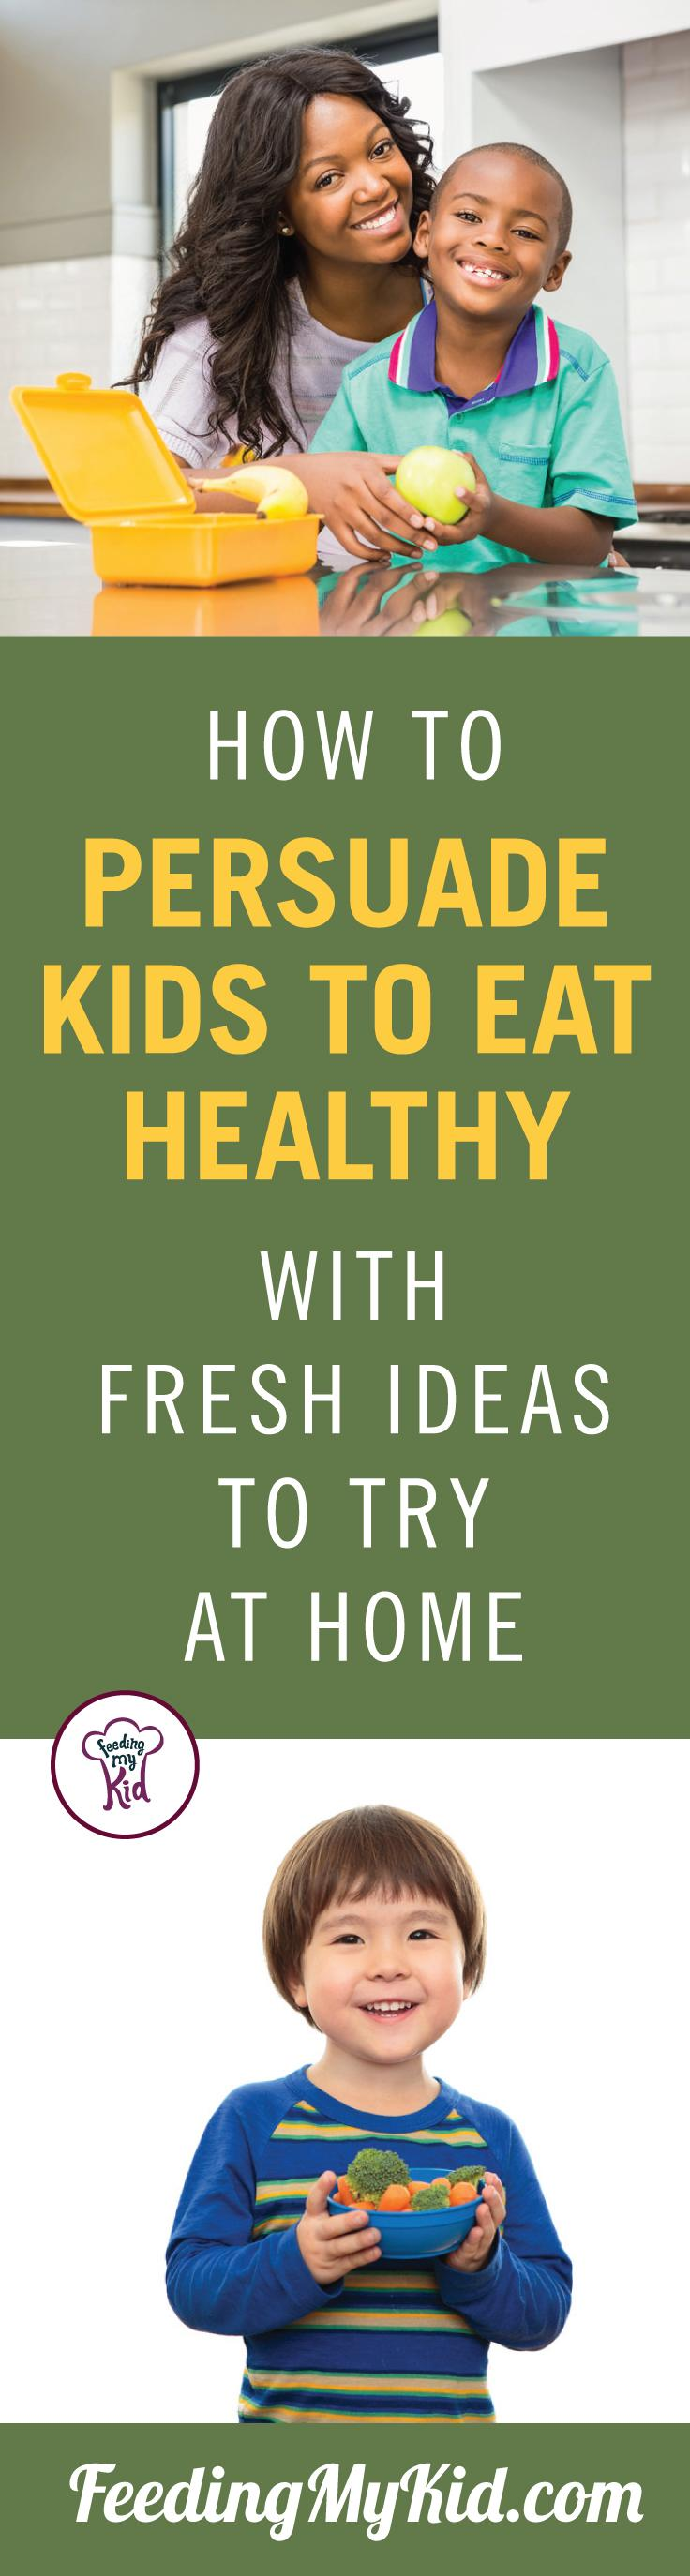 Learn how to develop healthy eating habits in kids and get them eating vegetables with the power of suggestion. Feeding My Kid is a filled with all the information you need about how to raise your kids, from healthy tips to nutritious recipes. #FeedingMyKid #pickyeating #healthyeatinghabits